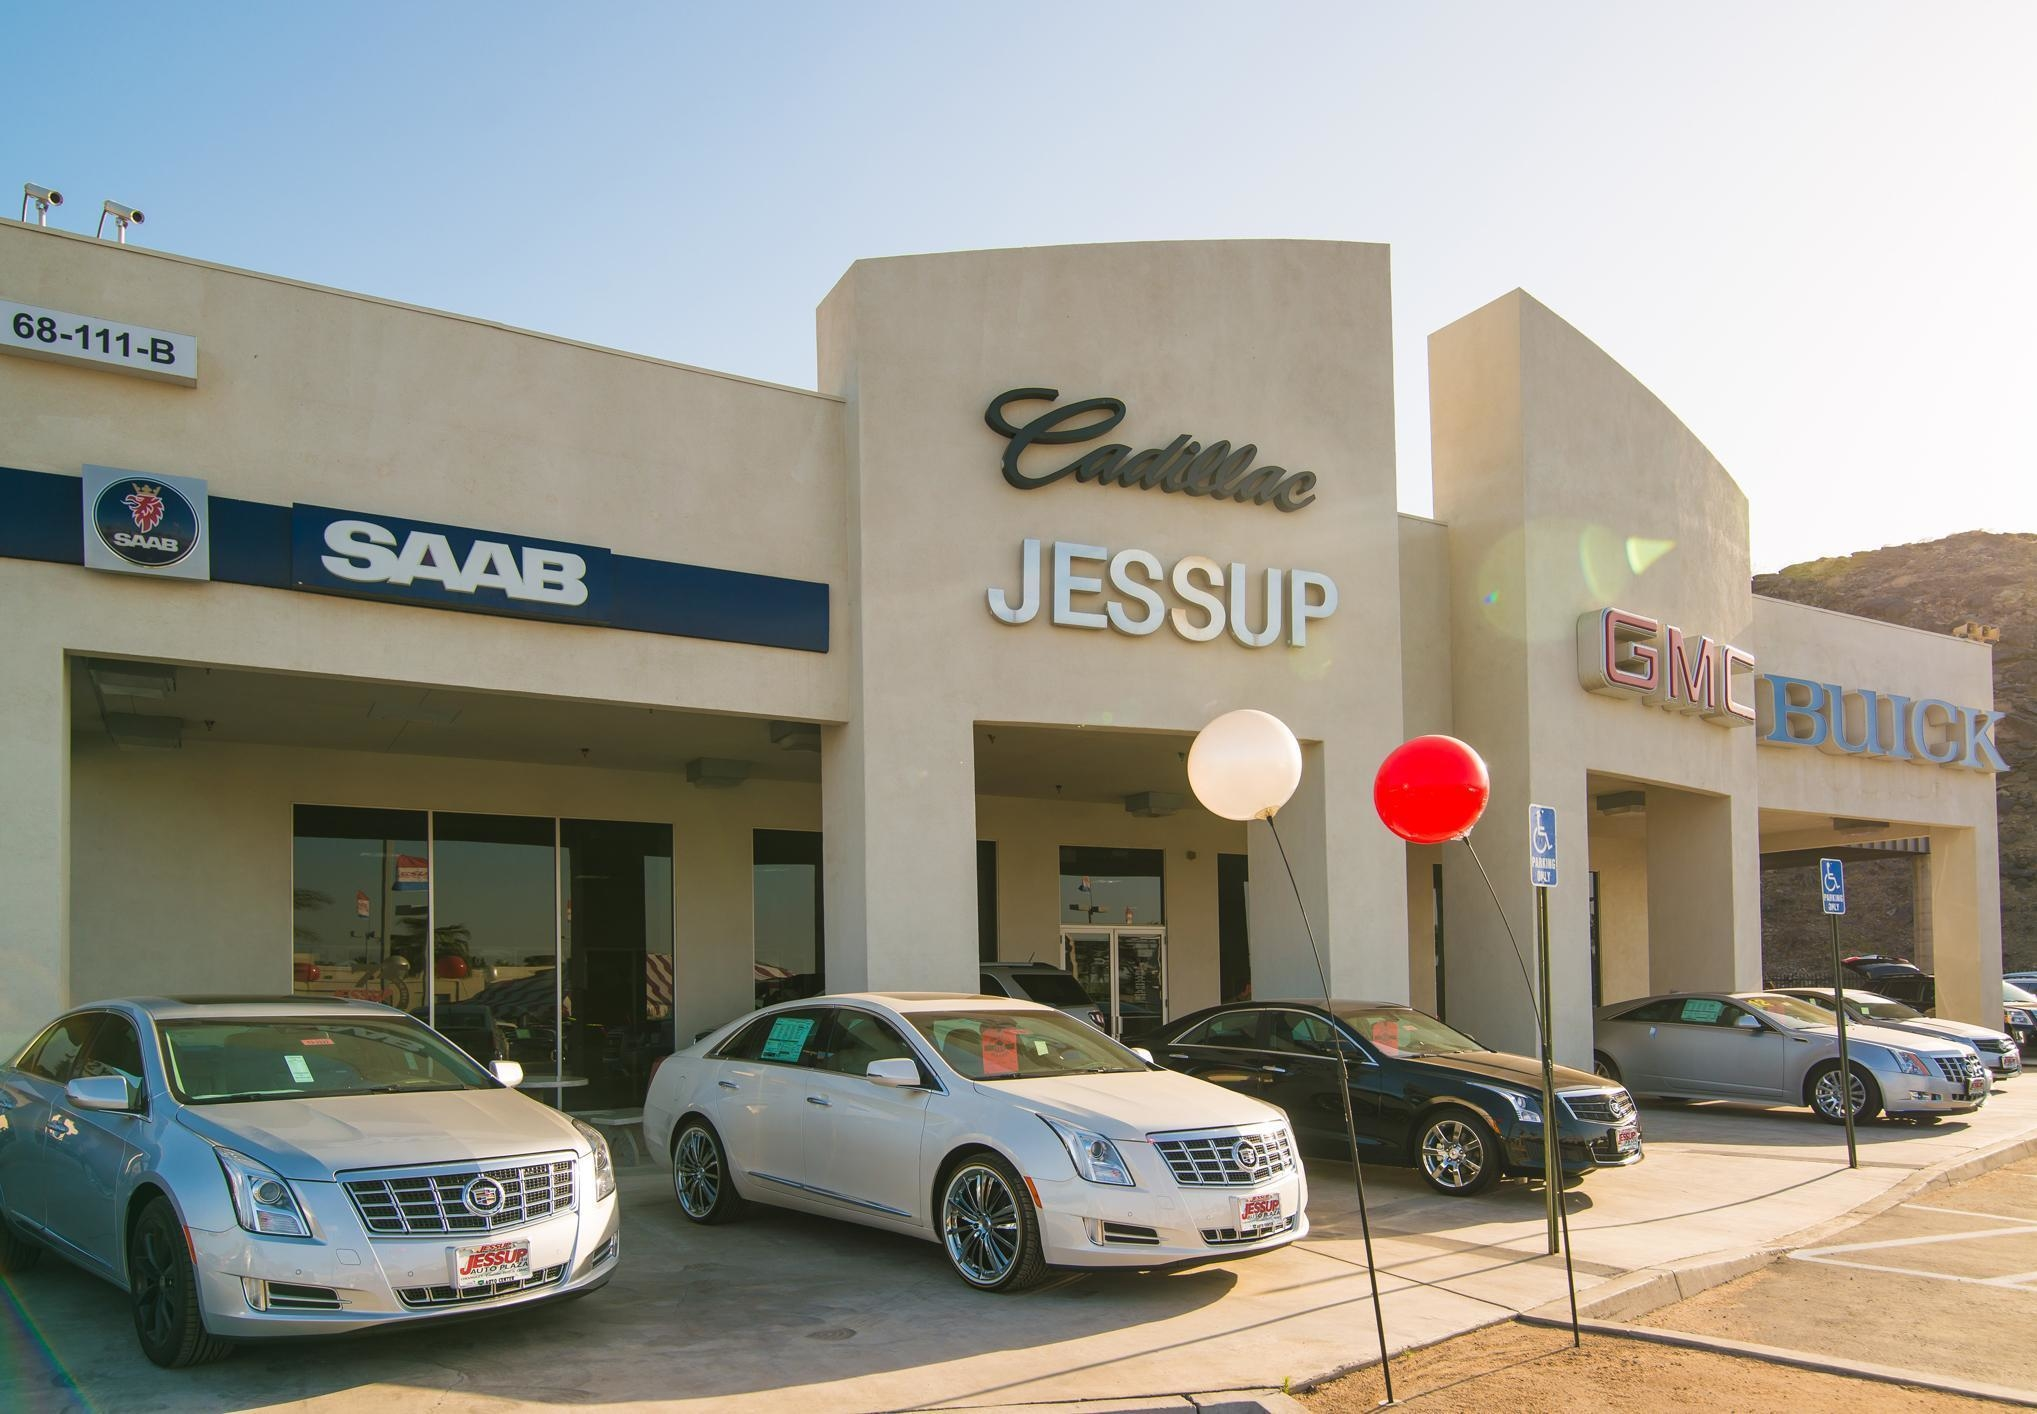 Jessup auto plaza cathedral city ca a palm desert autos post for Desert motors palm desert